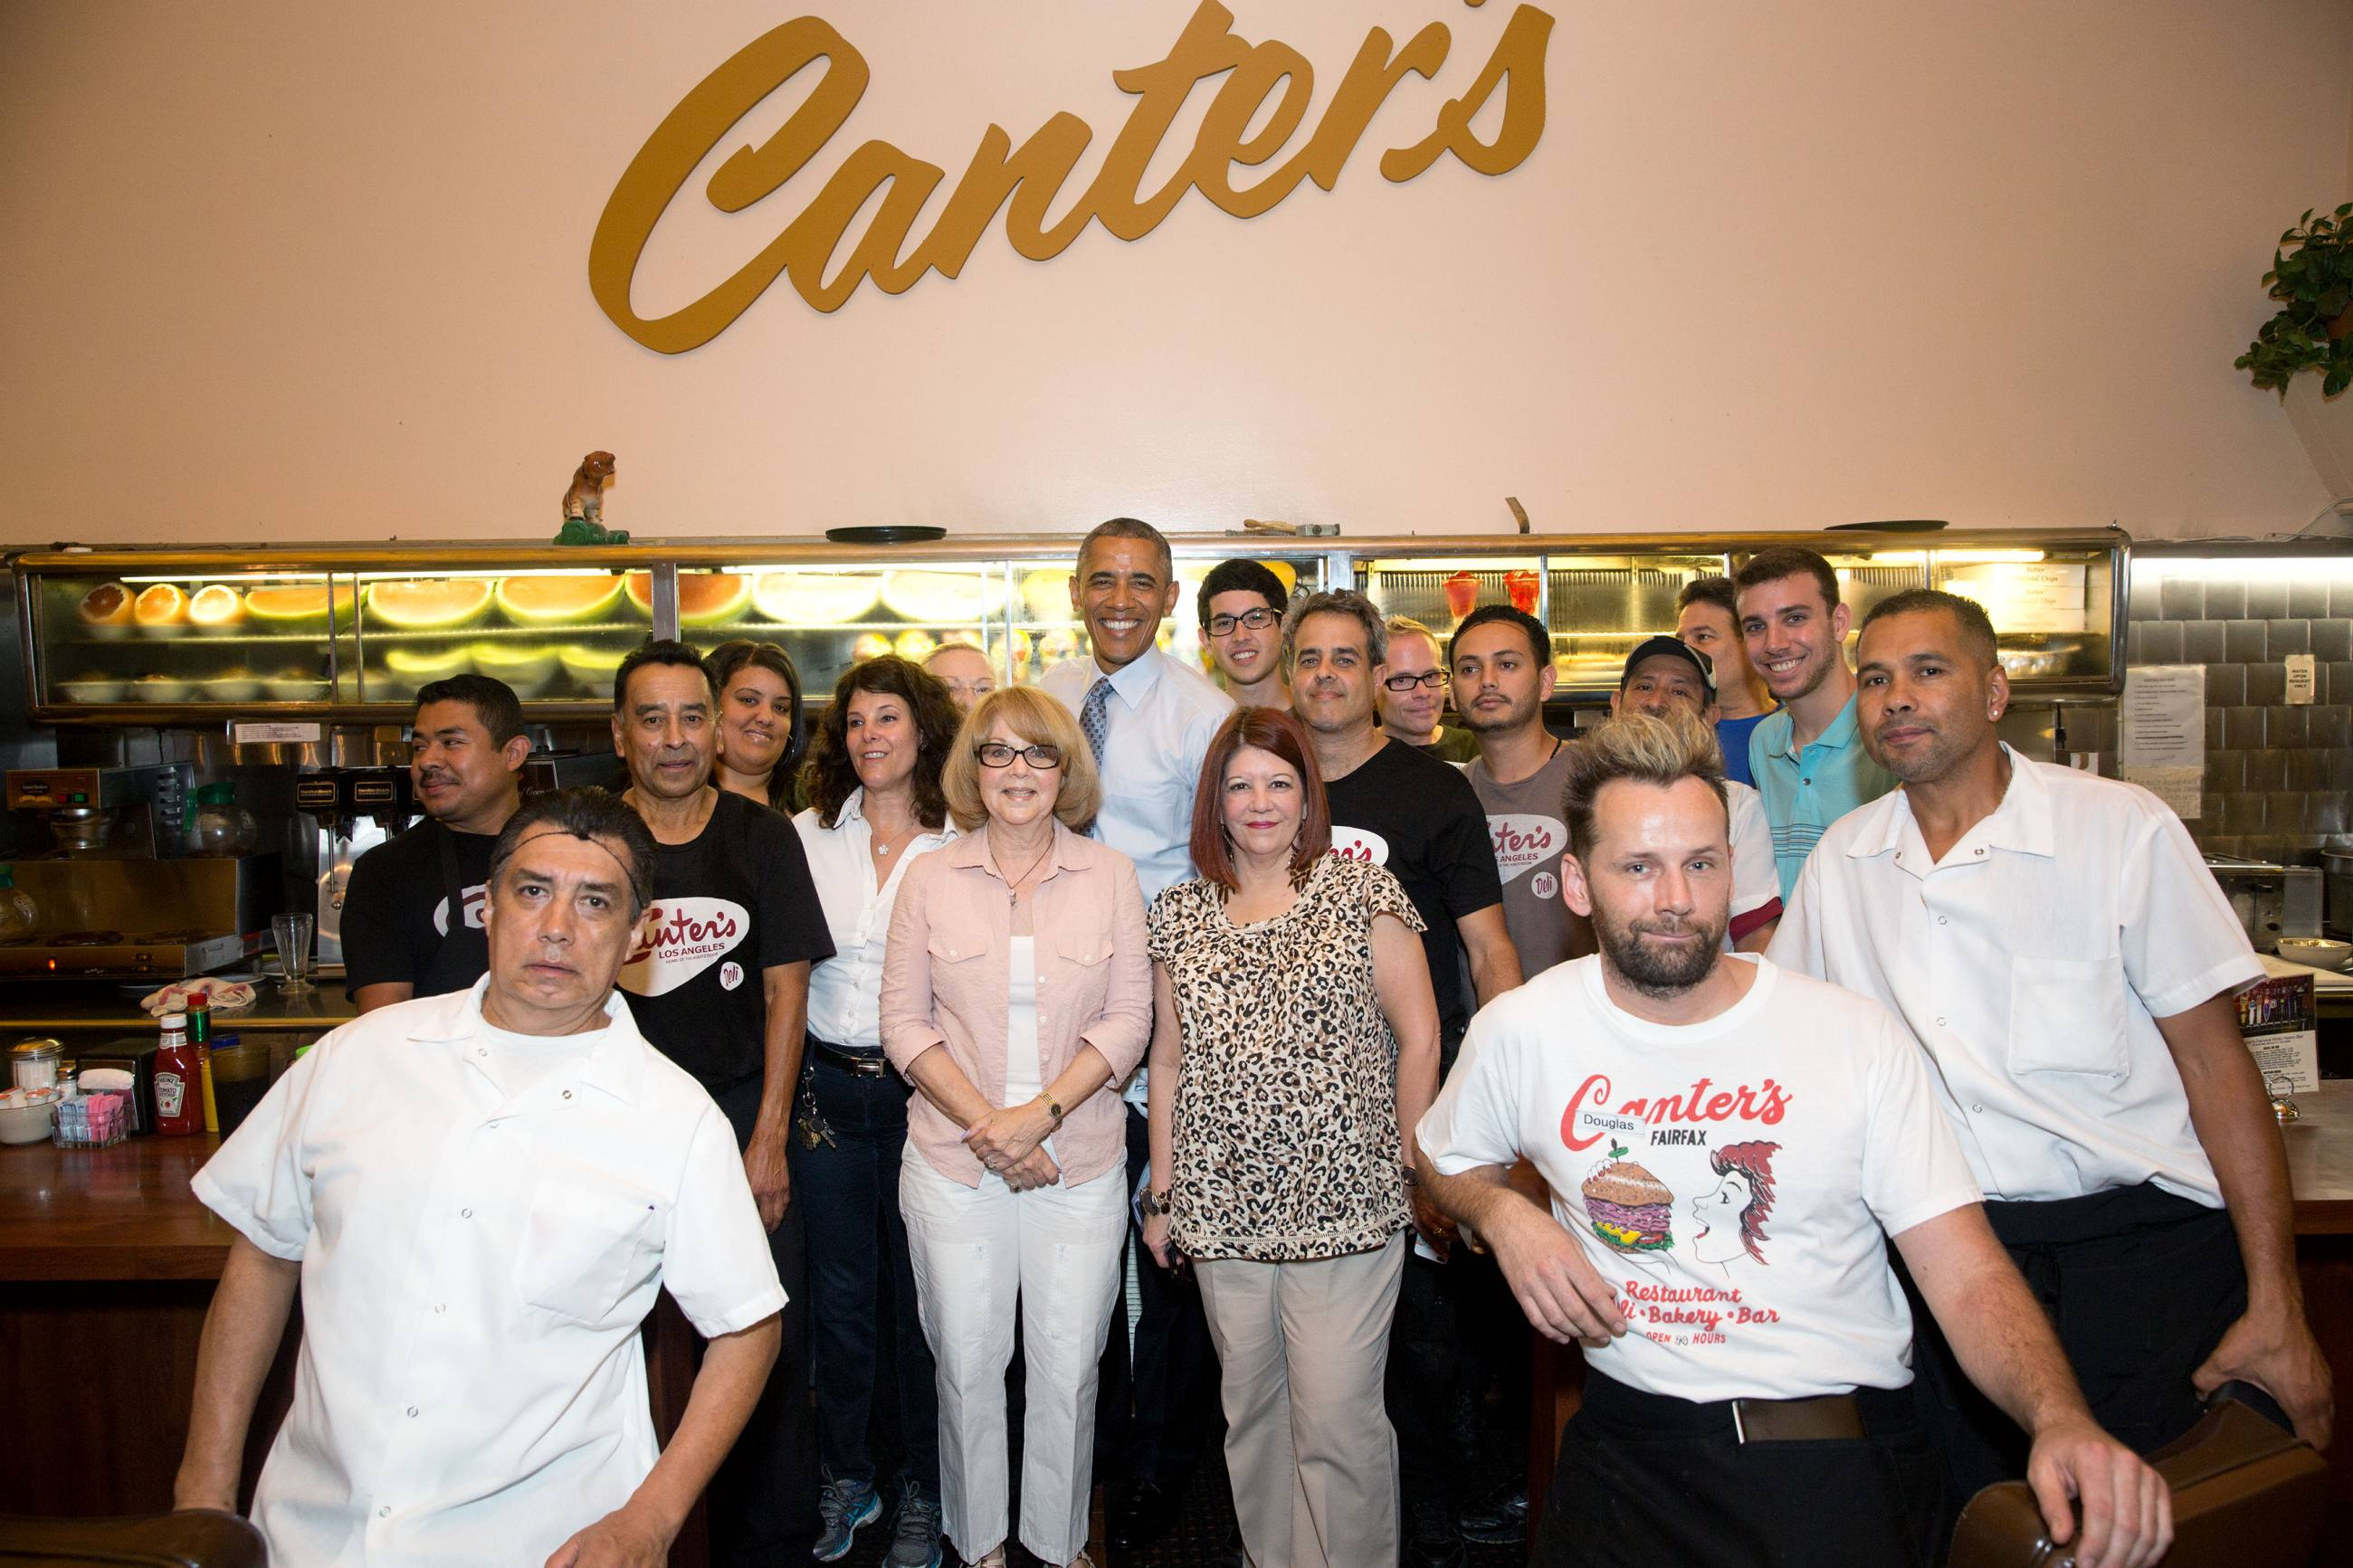 President Barack Obama Canter's Deli group photo